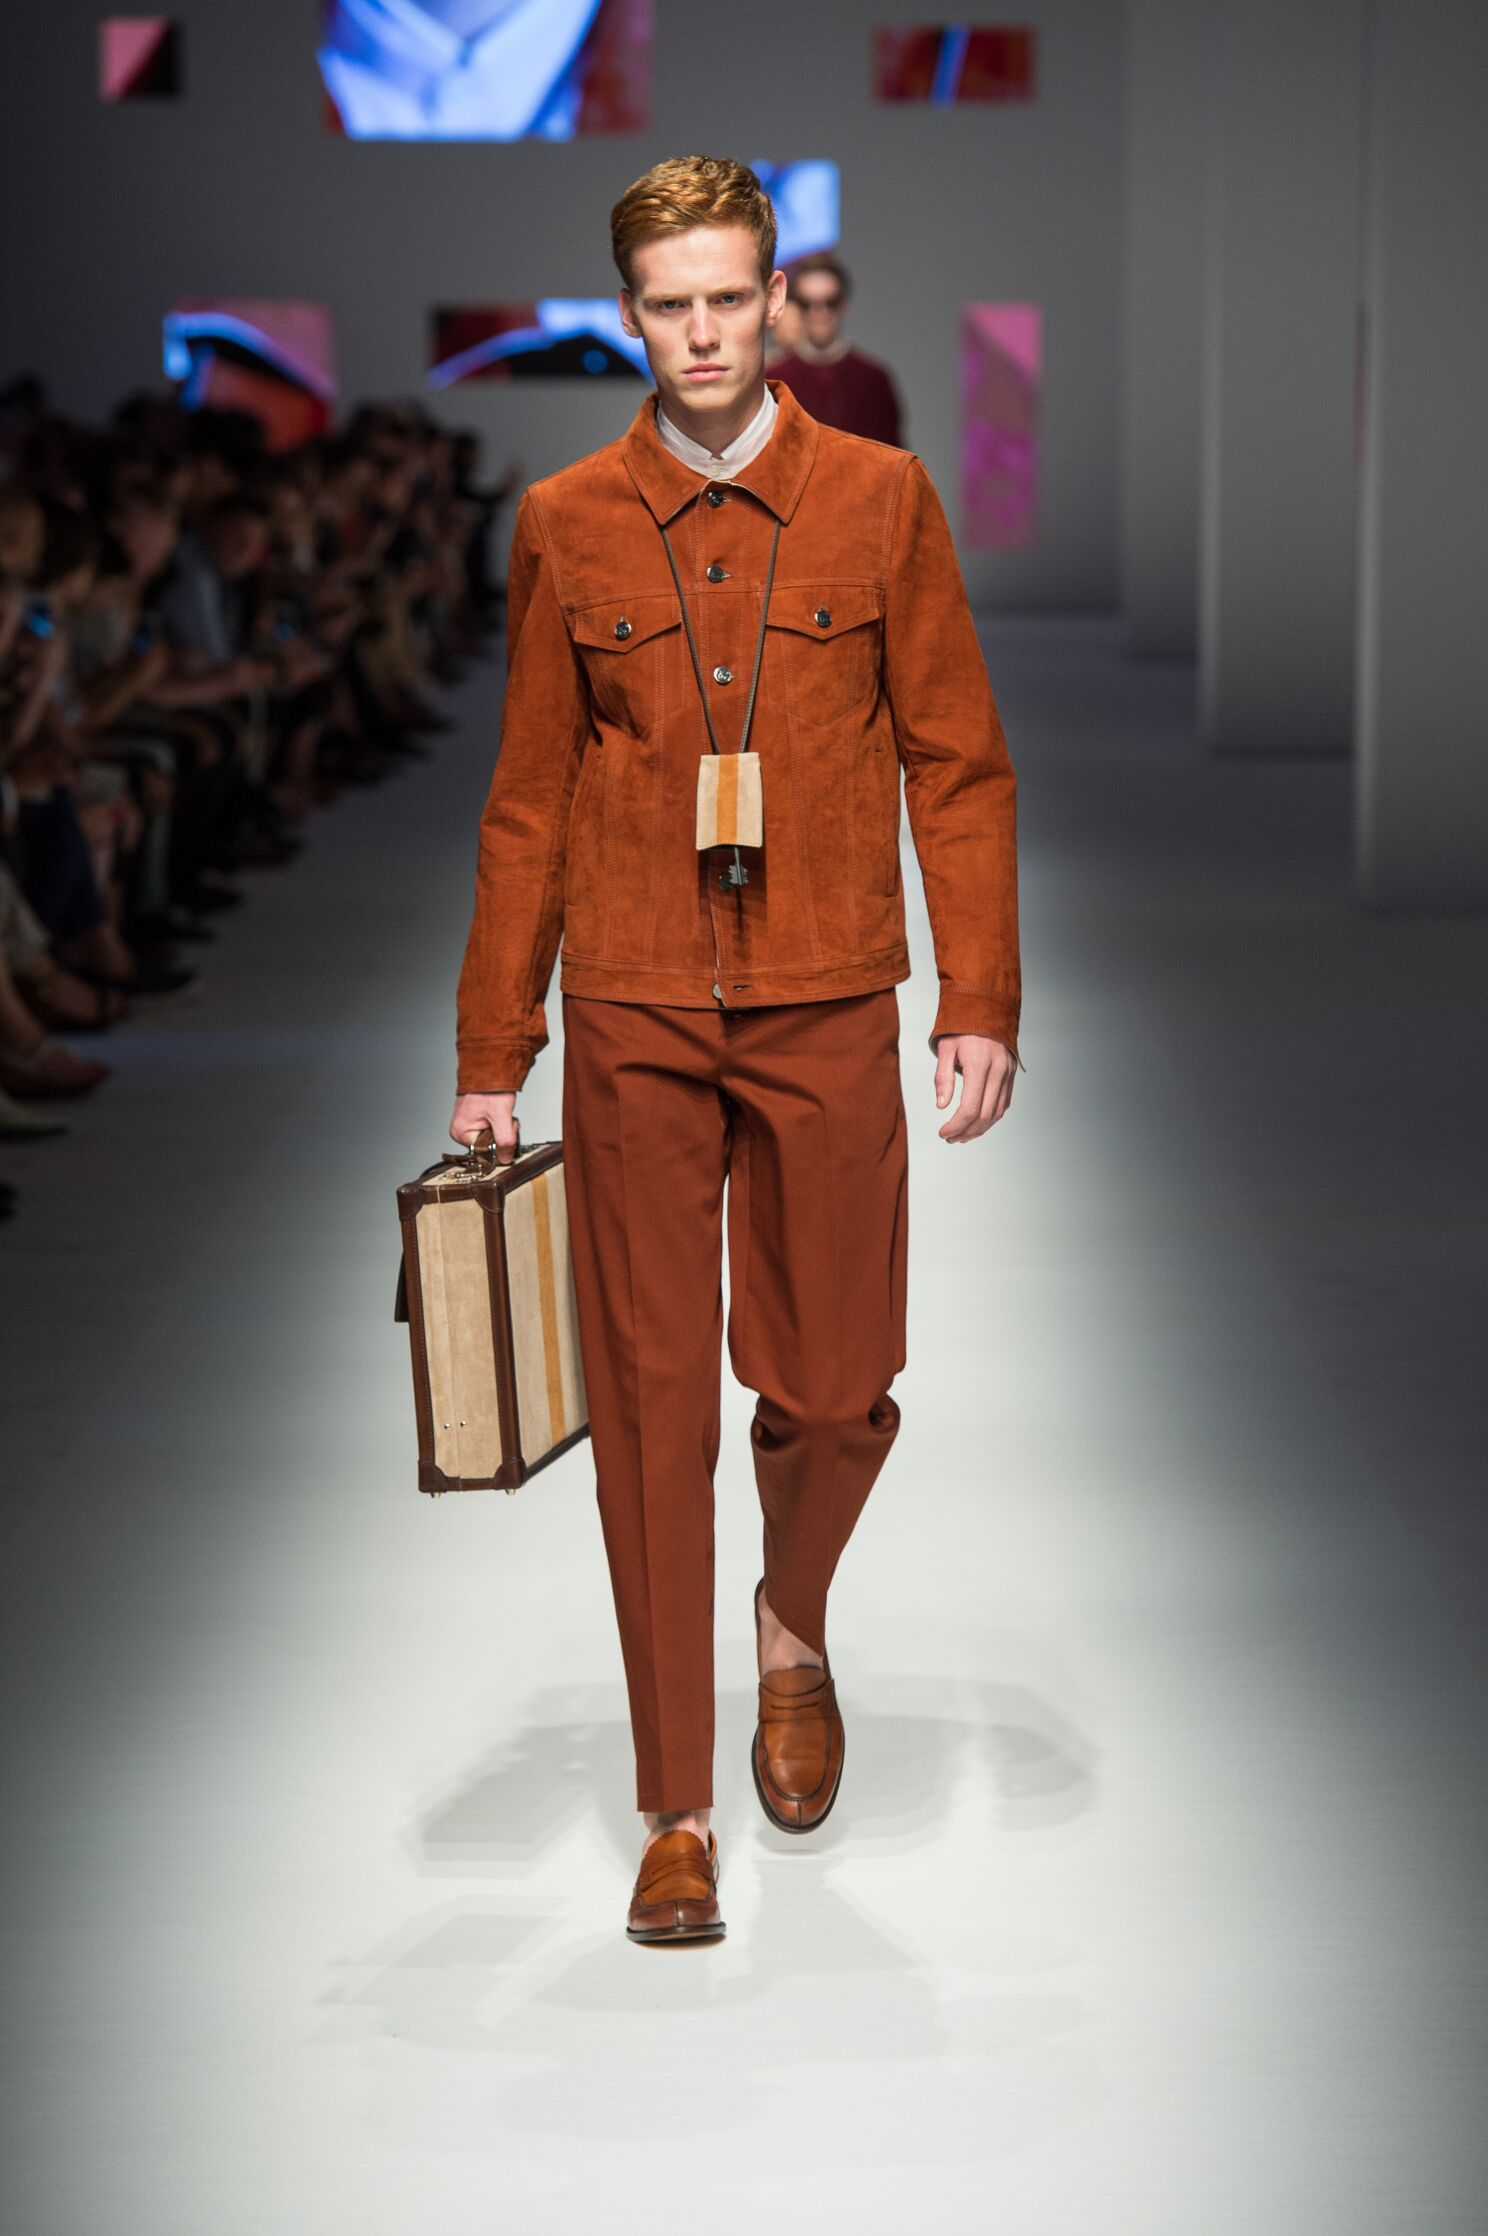 Canali Collection Catwalk